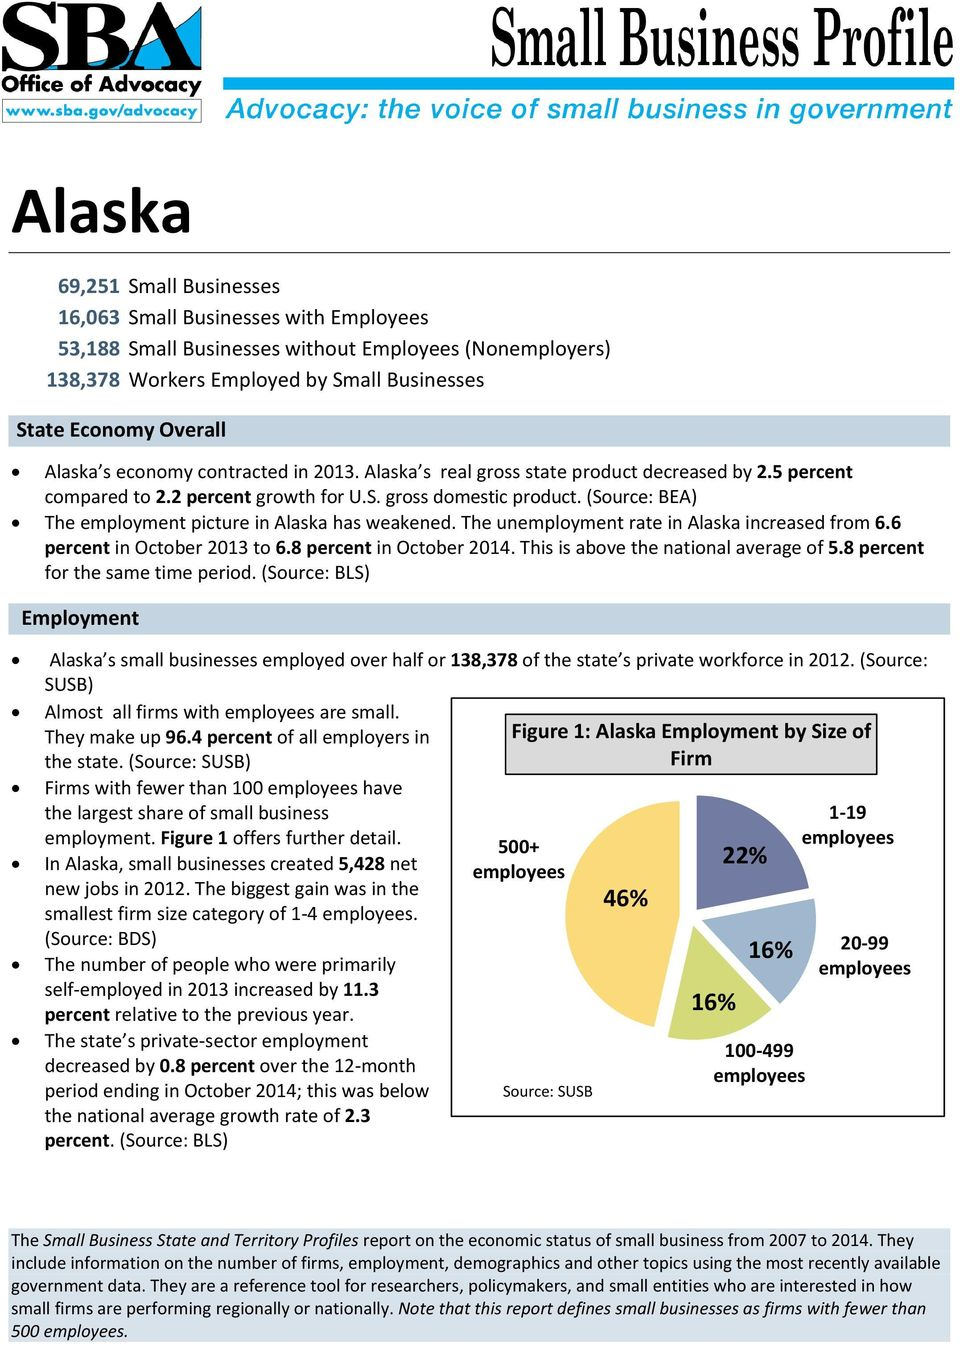 (Source: BEA) The employment picture in Alaska has weakened. The unemployment rate in Alaska increased from 6.6 percent in October 2013 to 6.8 percent in October 2014.